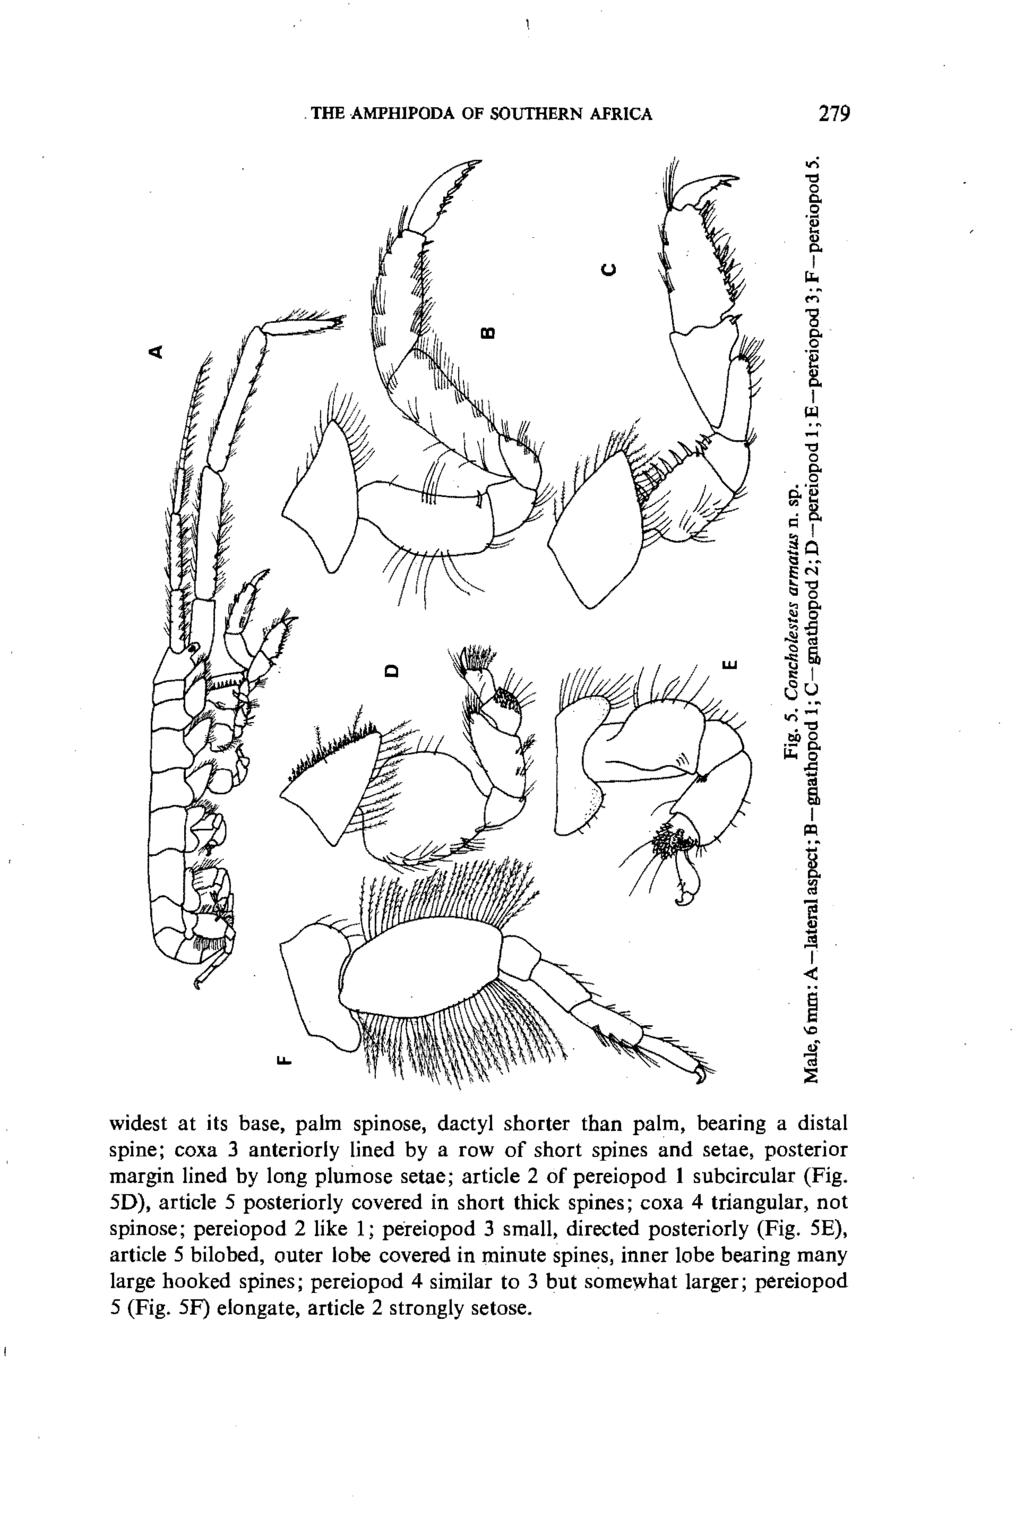 THE AMPHIPODA OF SOUTHERN AFRICA 279 widest at its base, palm spinose, dactyl shorter than palm, bearing a distal spine; coxa 3 anteriorly lined by a row of short spines and setae, posterior margin